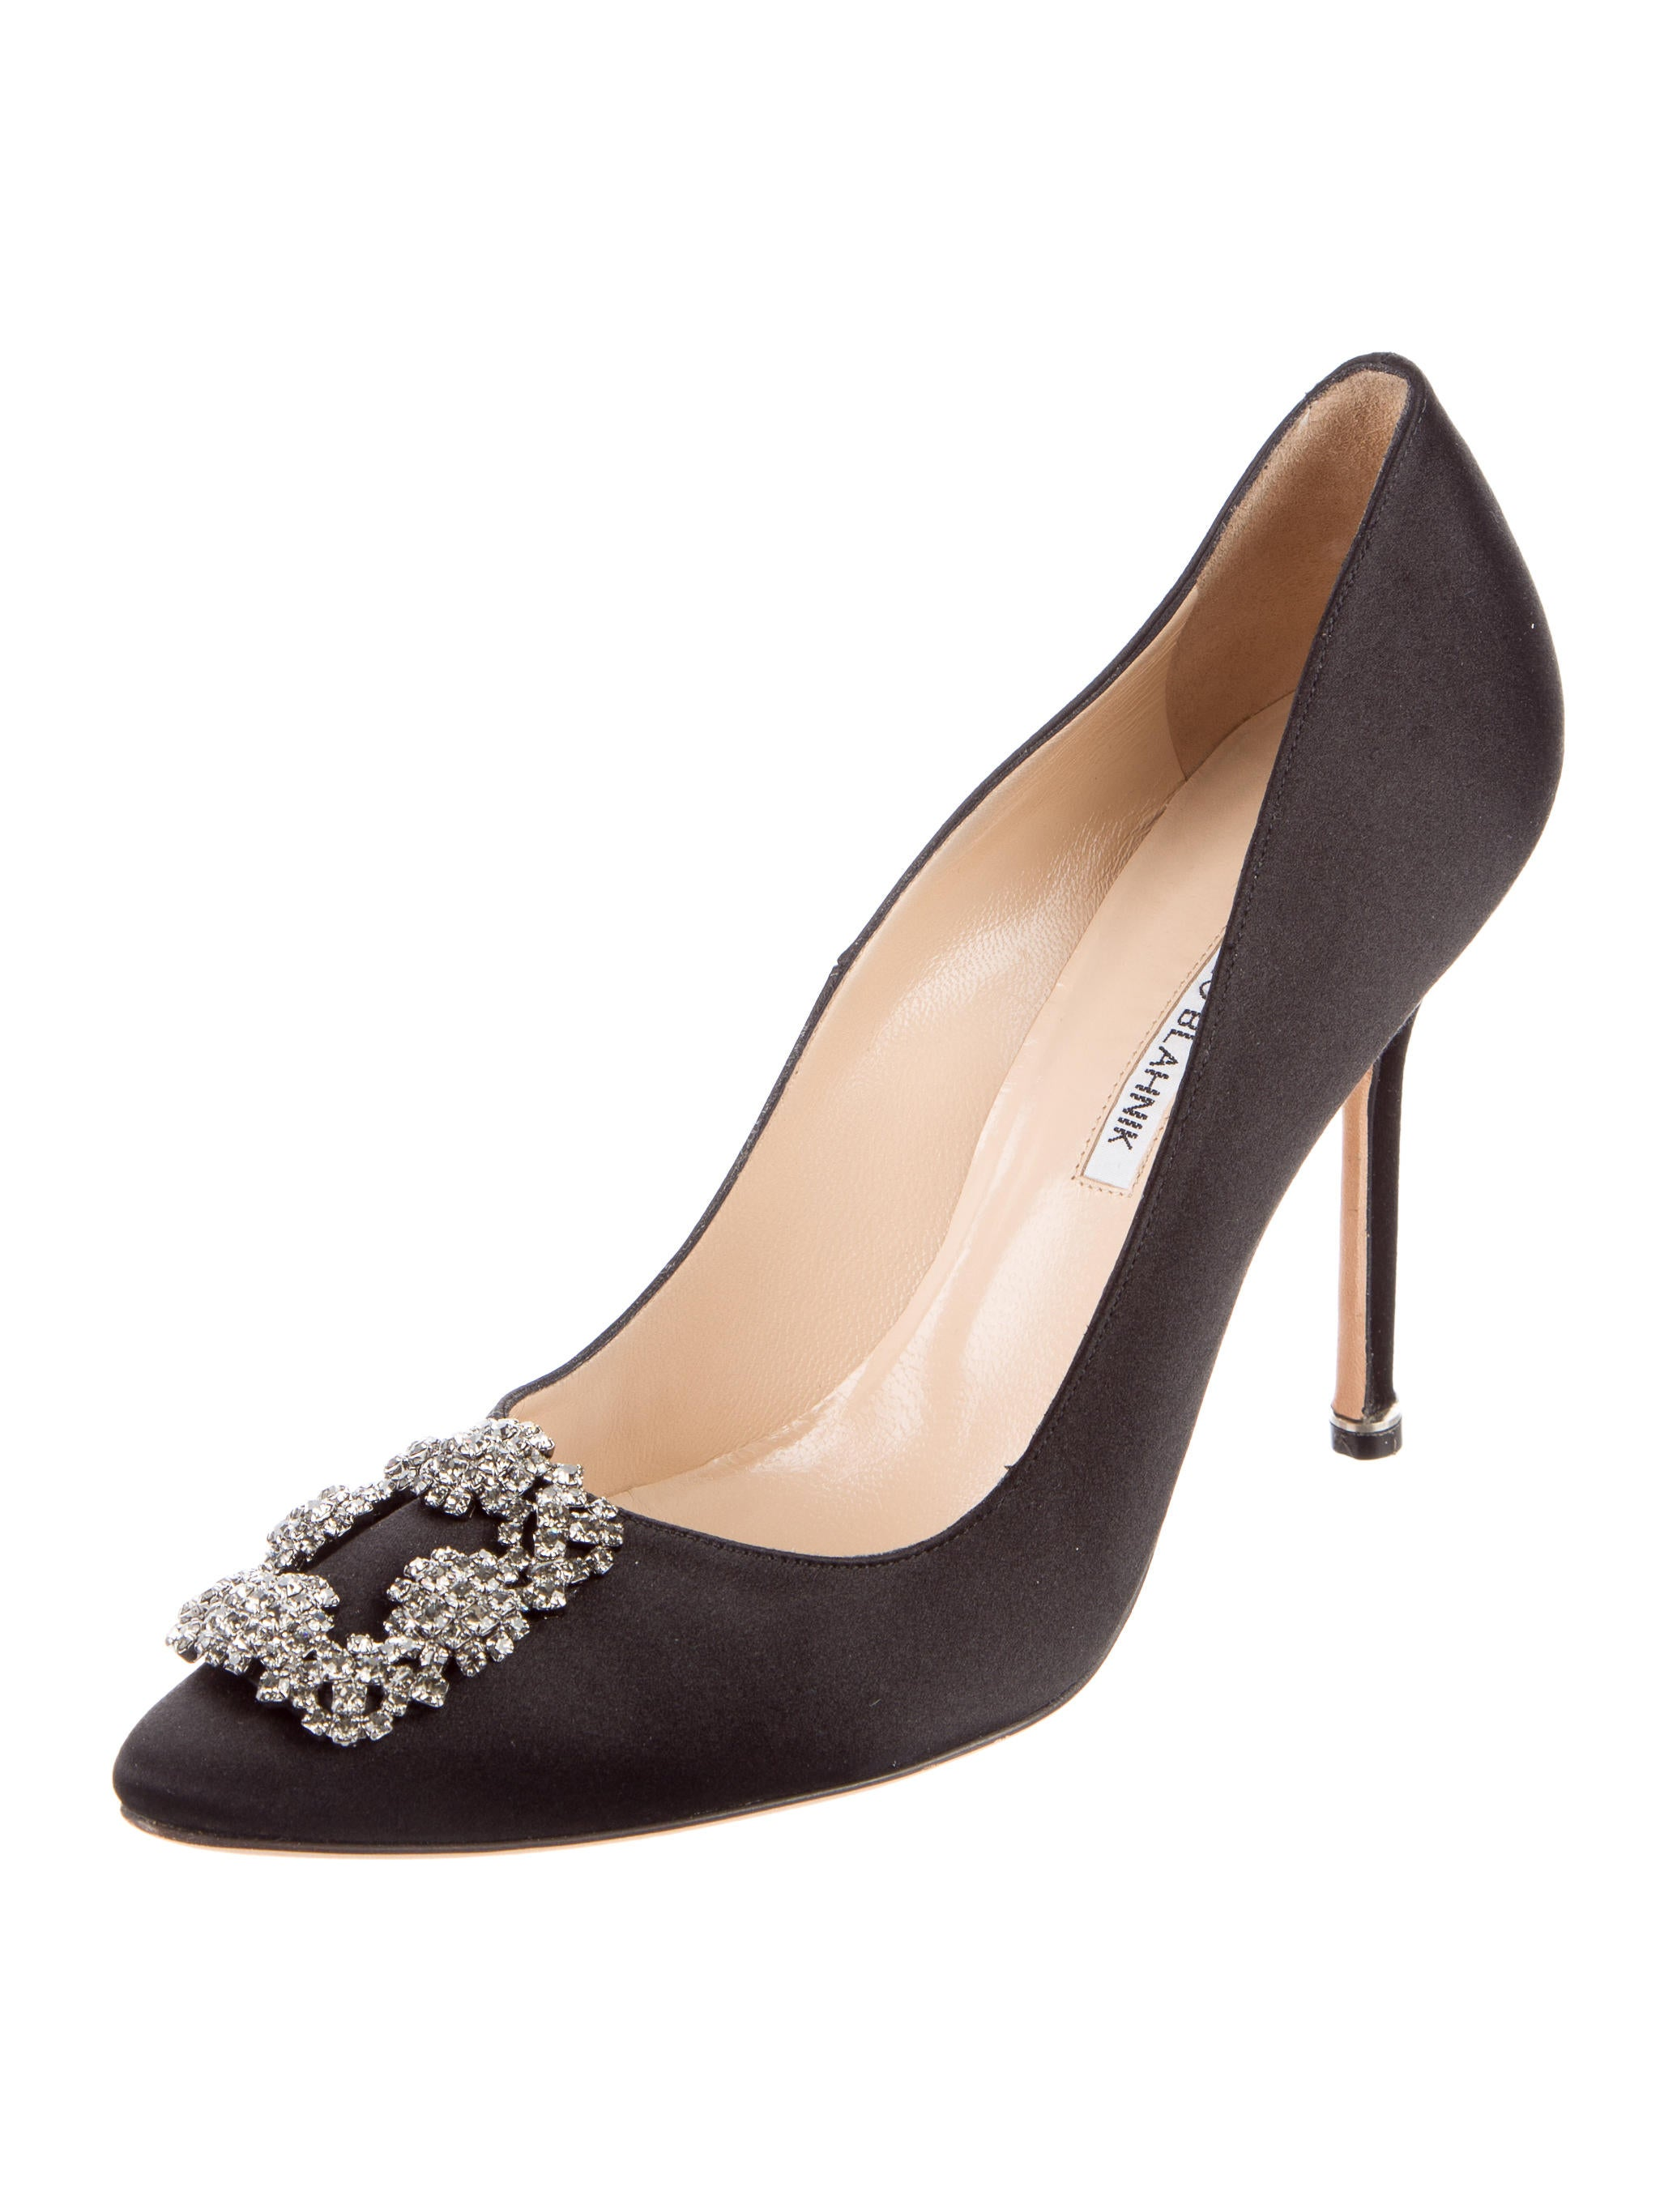 Manolo blahnik hangsisi satin pumps shoes moo61094 for Who is manolo blahnik